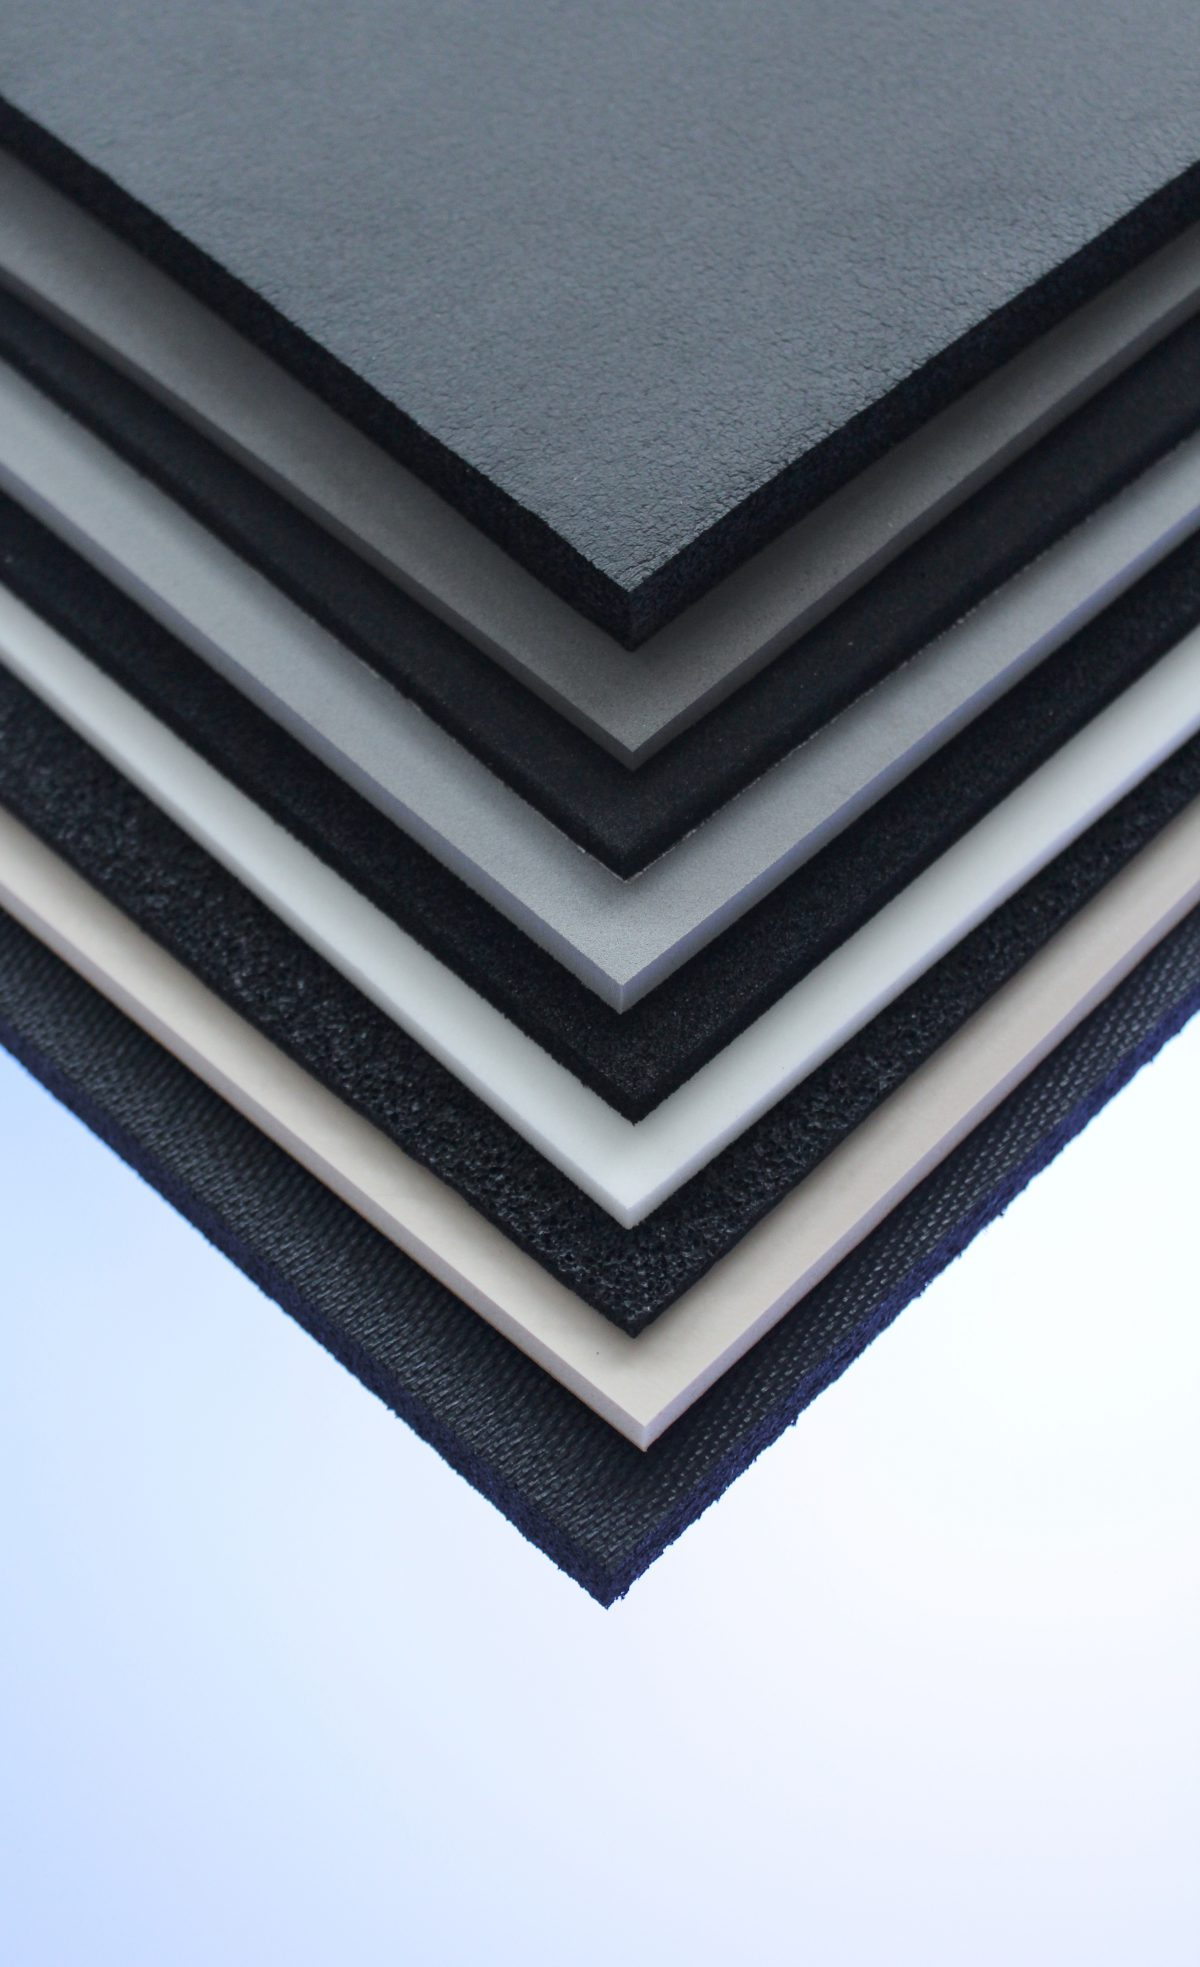 Sponge Foam and Cellular Grades EMI RFI seals gaskets